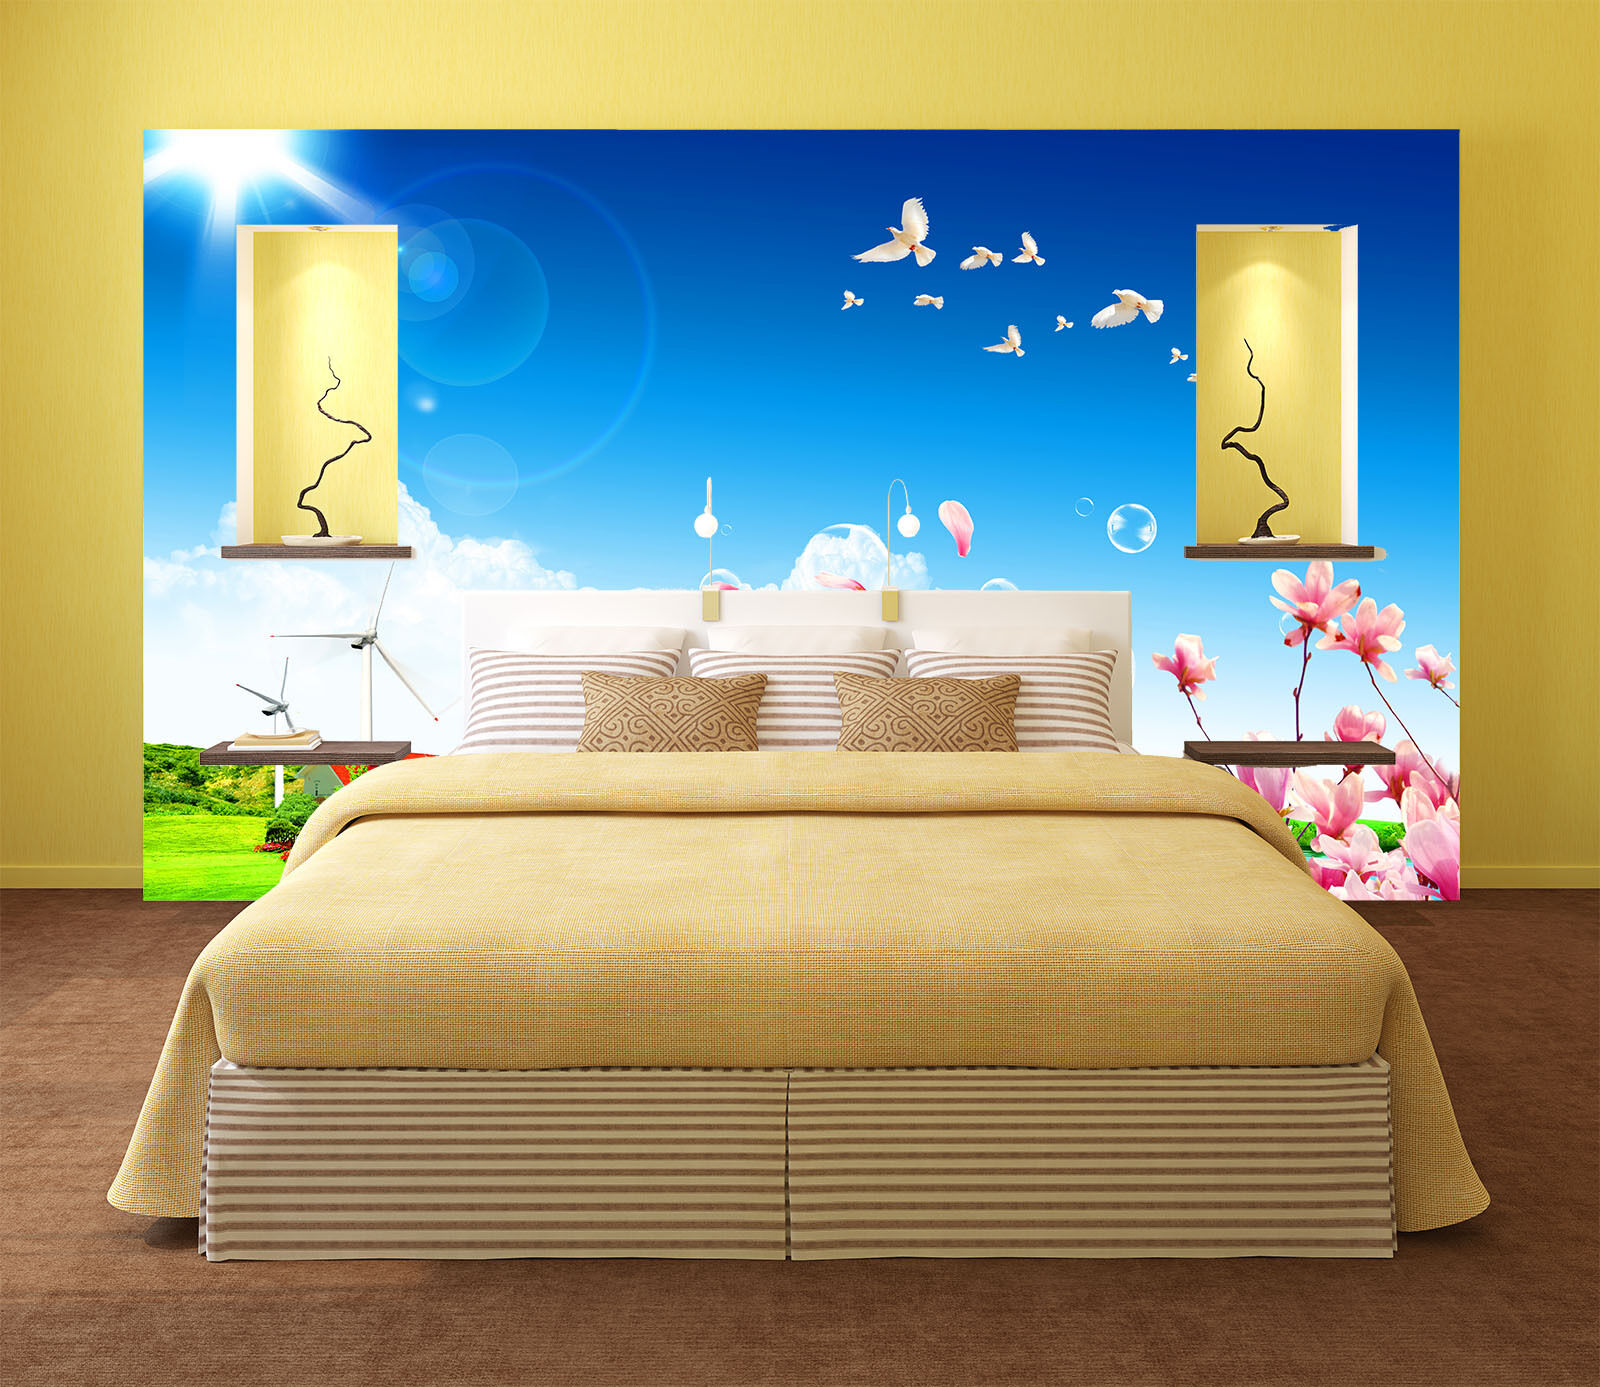 3D Lake Buildings 48 Wall Paper Wall Print Decal Wall Deco Indoor AJ Wall Paper